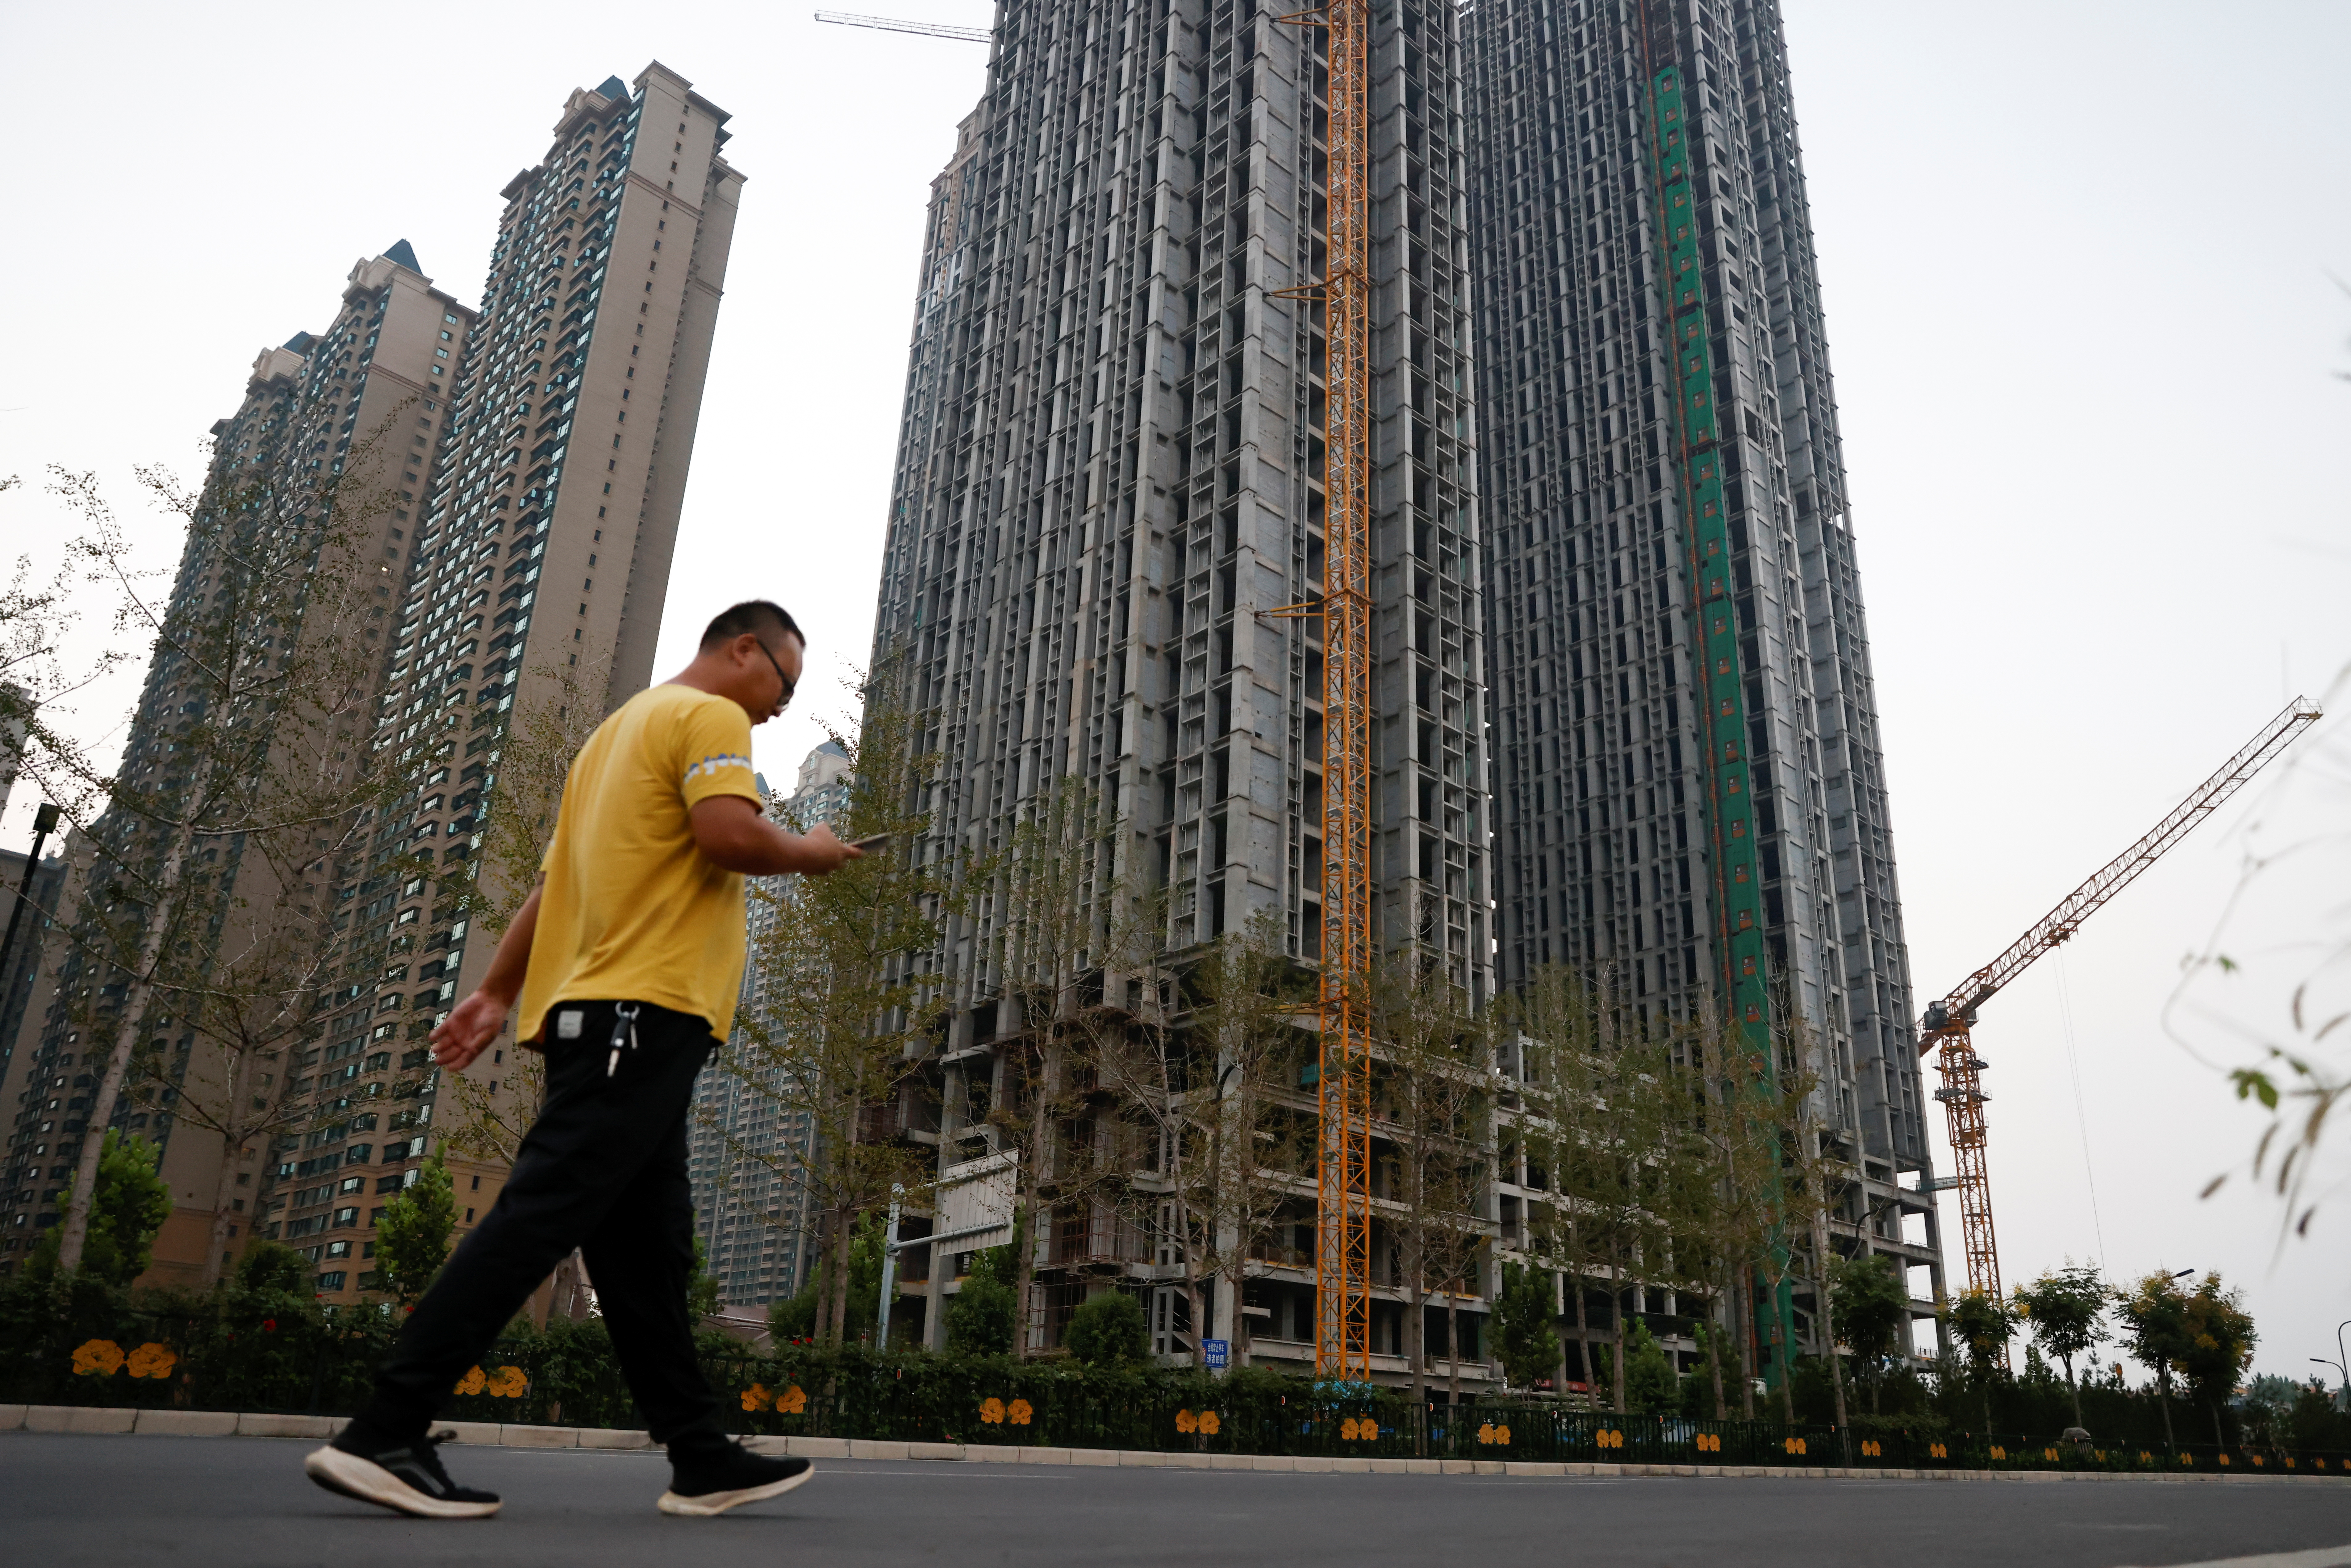 A man walks in front of unfinished residential buildings at the Evergrande Oasis, a housing complex developed by Evergrande Group, in Luoyang, China September 15, 2021. Picture taken September 15, 2021. REUTERS/Carlos Garcia Rawlins